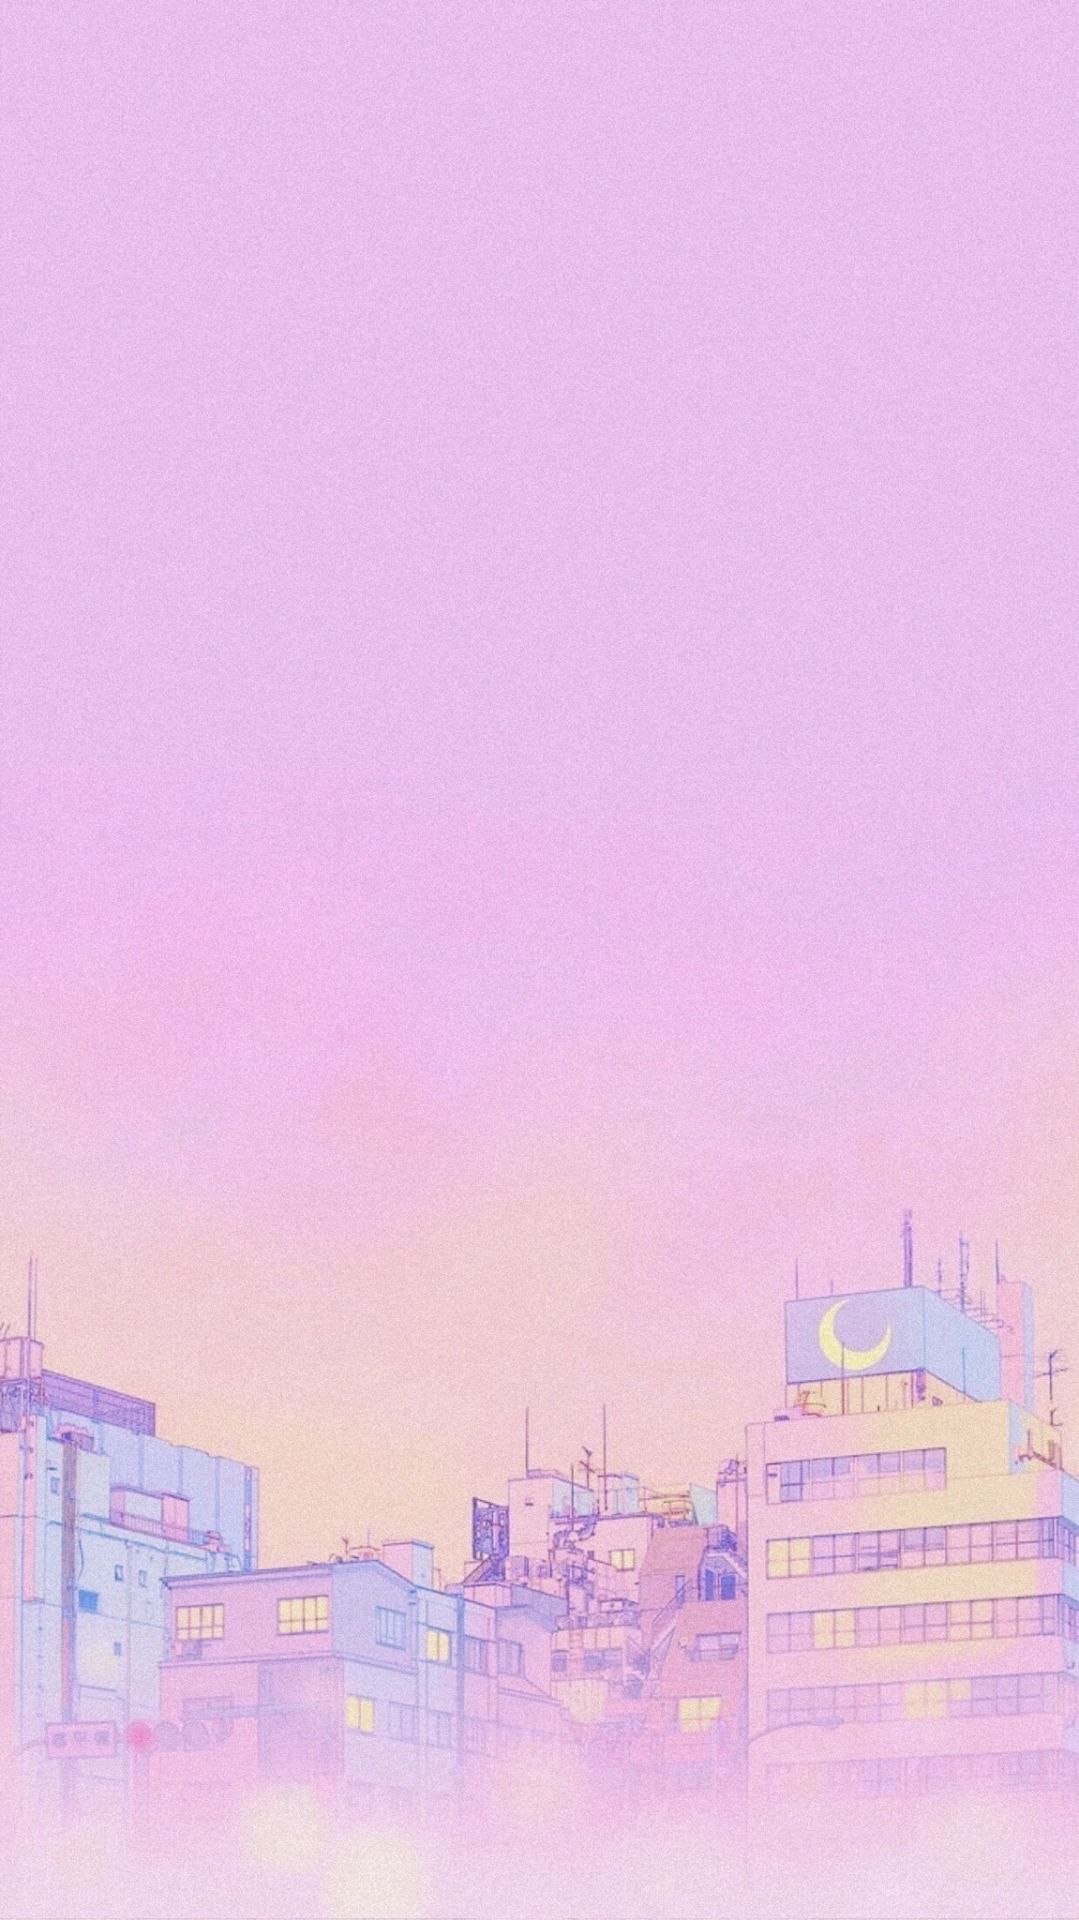 C L R X X I Anime Wallpaper Iphone Cute Pastel Wallpaper Aesthetic Anime